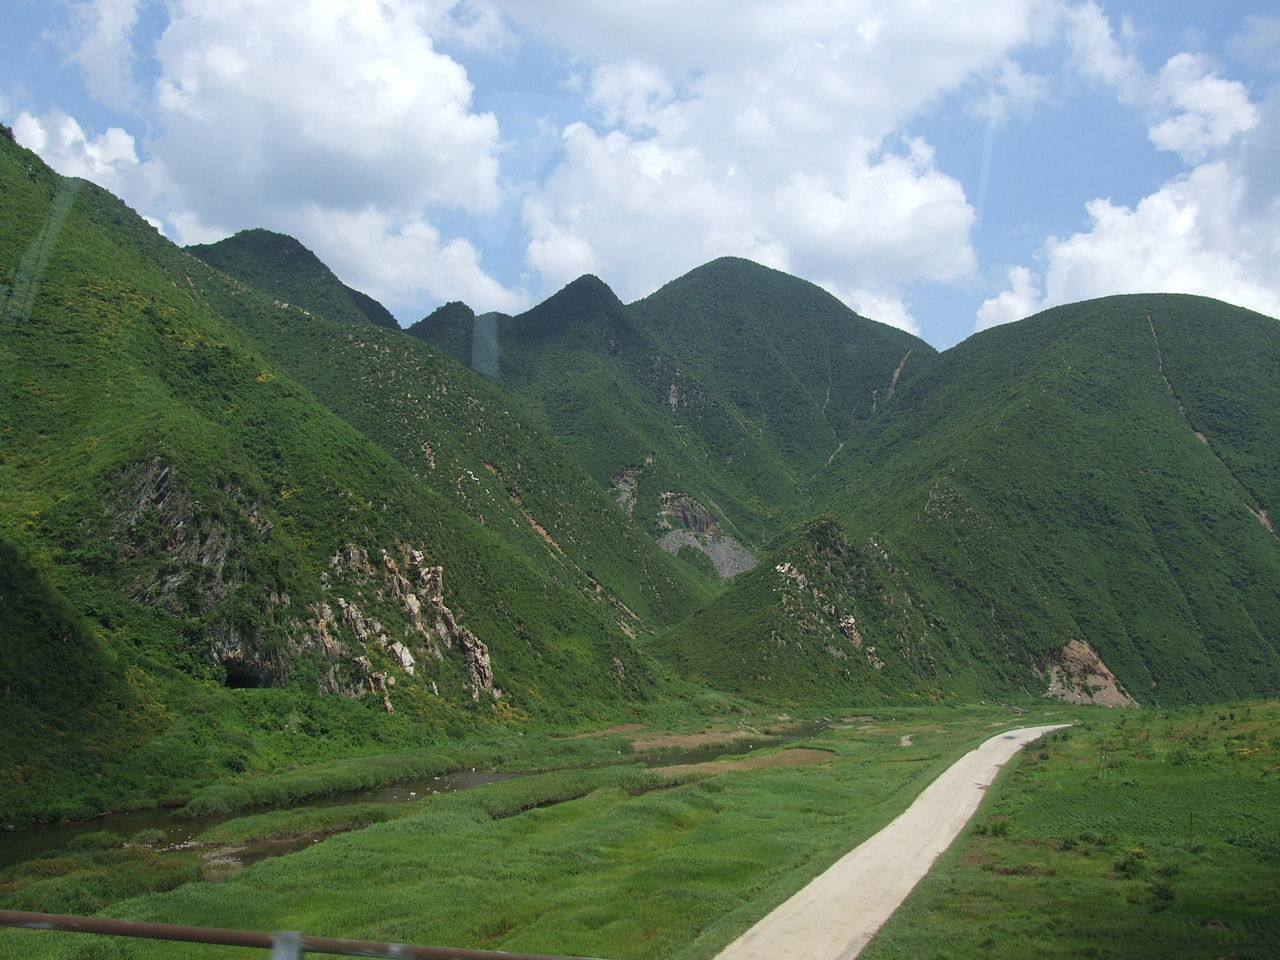 filelandscape with mountains in north koreajpg